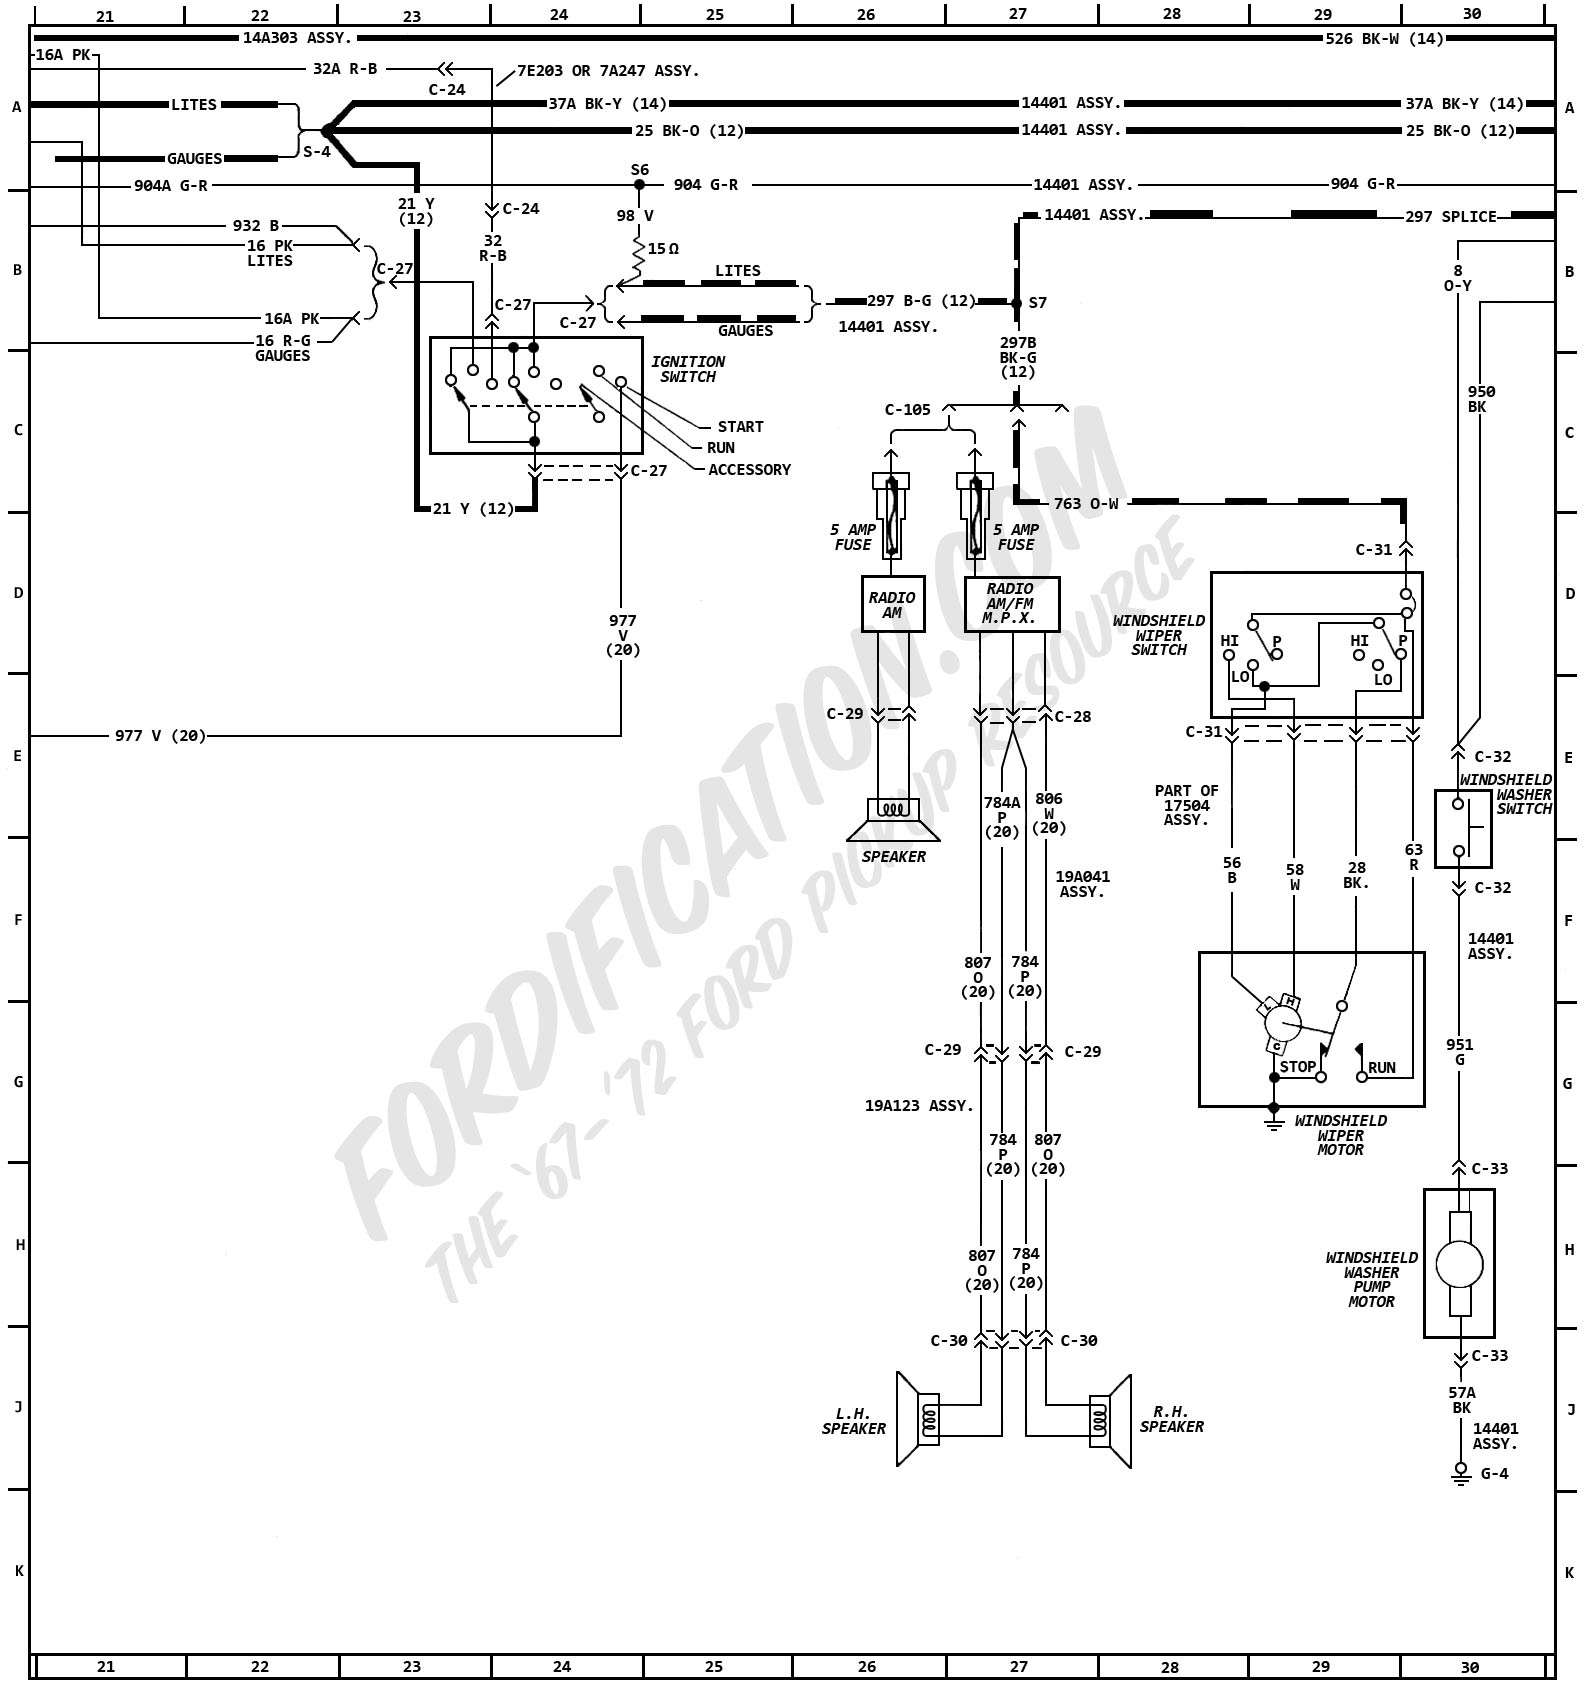 72 ford wiring diagrams wiring schematic diagram rh theodocle fion com 1980 Ford  F-250 97 Ford F-250